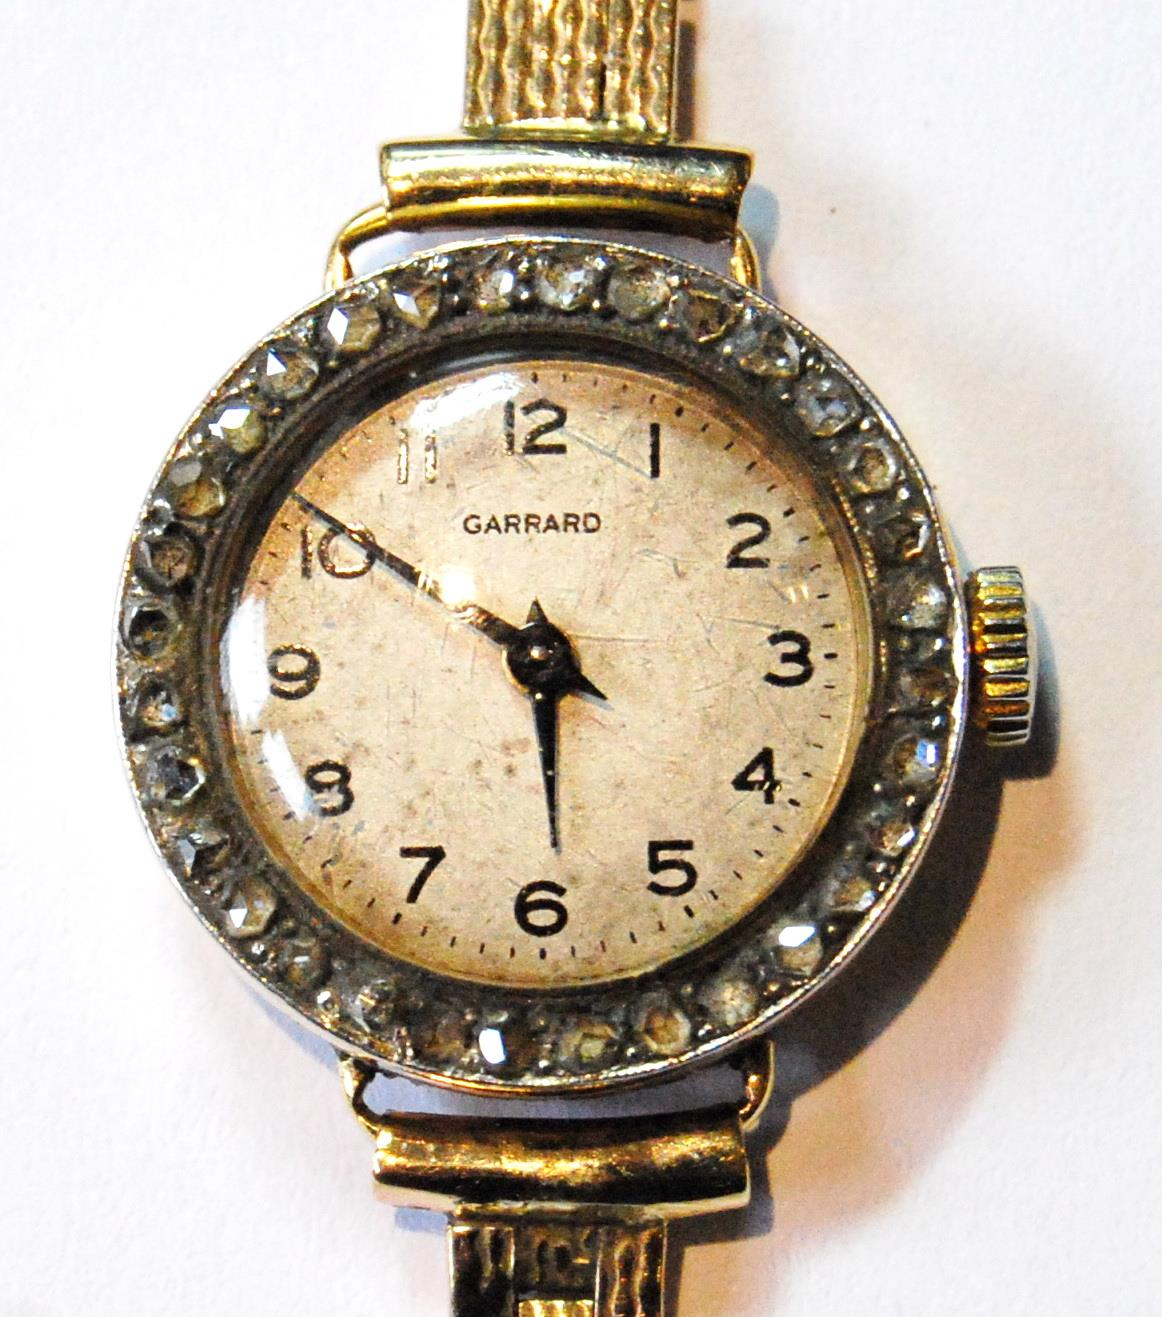 Garrard lady's 18ct gold watch with diamond-set bezel, 1919, movement replaced, on 9ct gold - Image 2 of 4